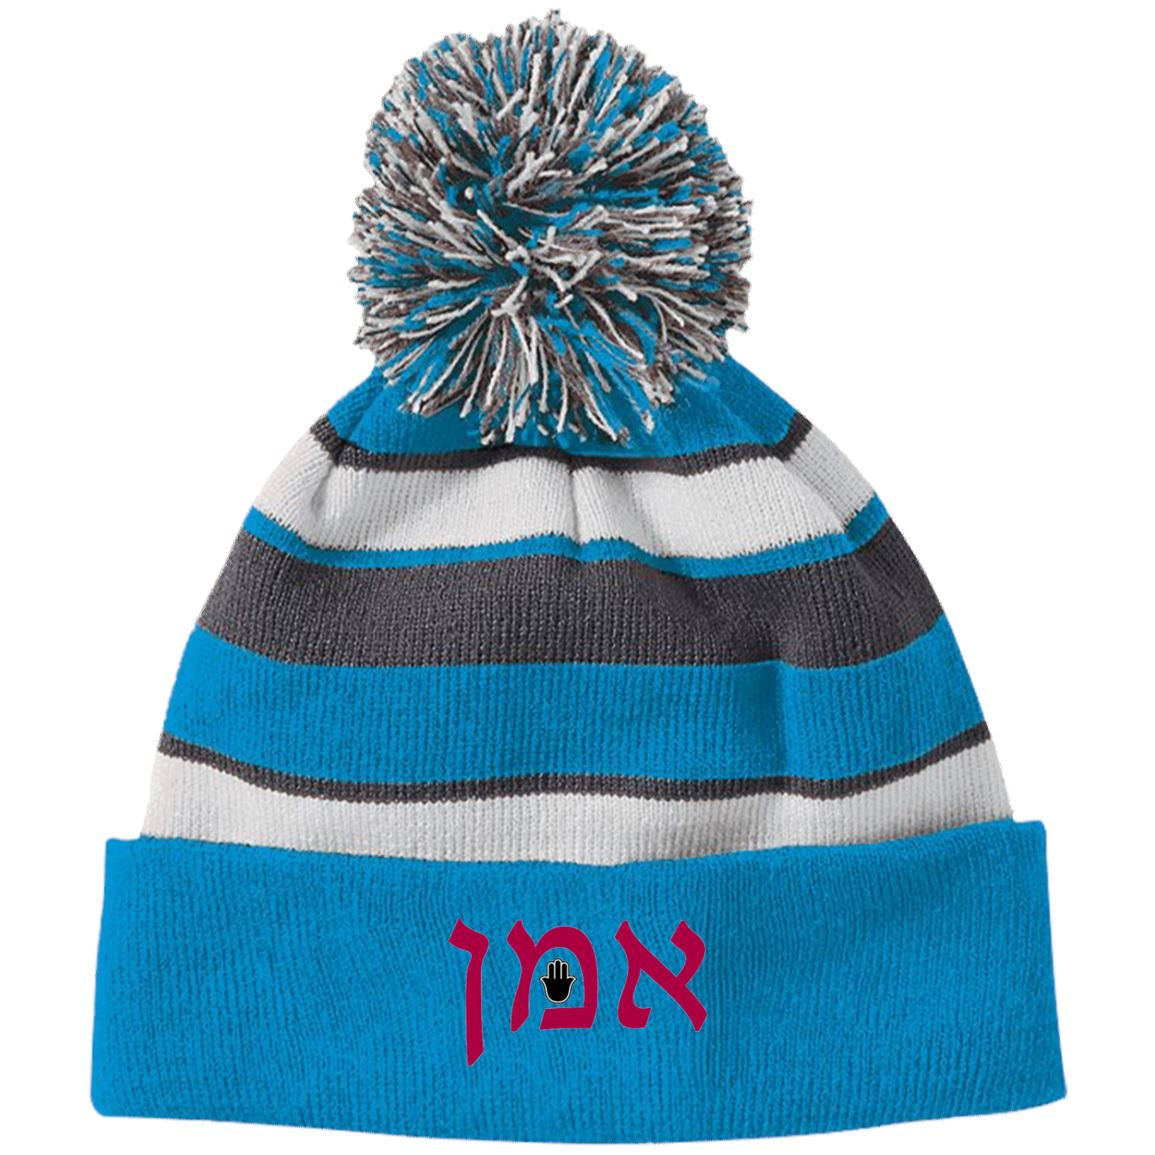 Amen Hebrew Embroidered Knit Fashion Striped Beanie Hat & Pom Hats Black/White One Size